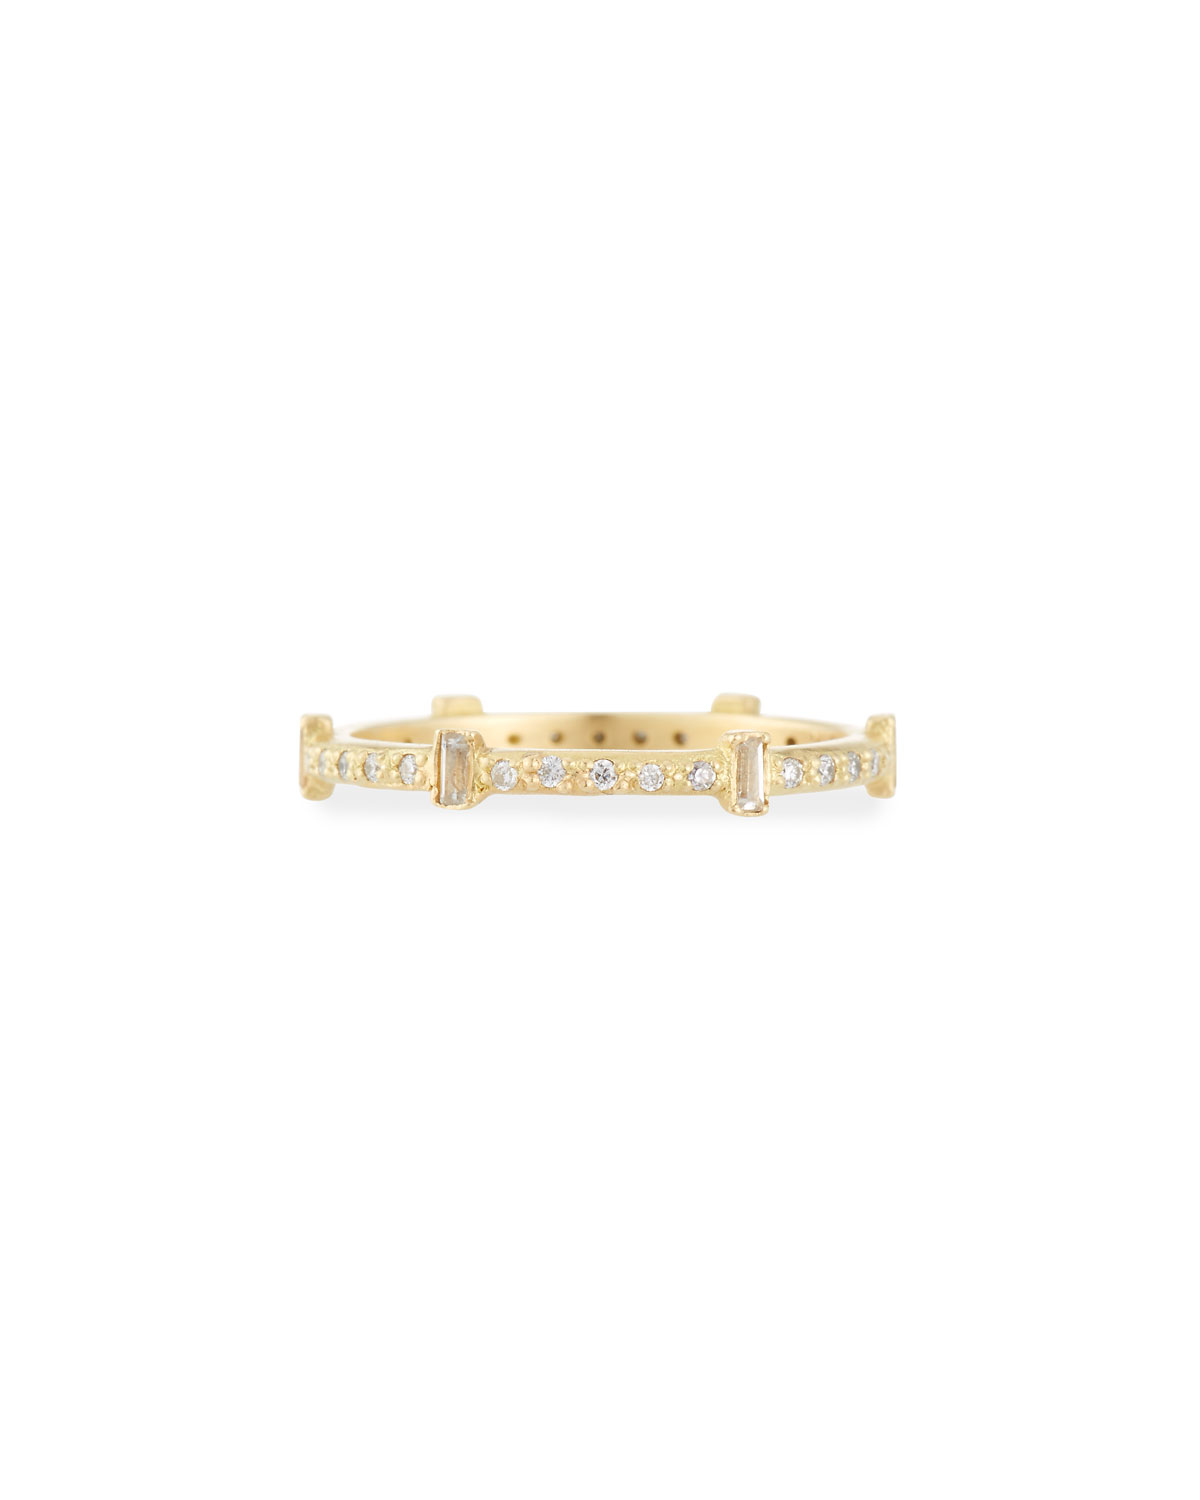 Old World Sueno Six-Sapphire Baguette Ring with Diamonds